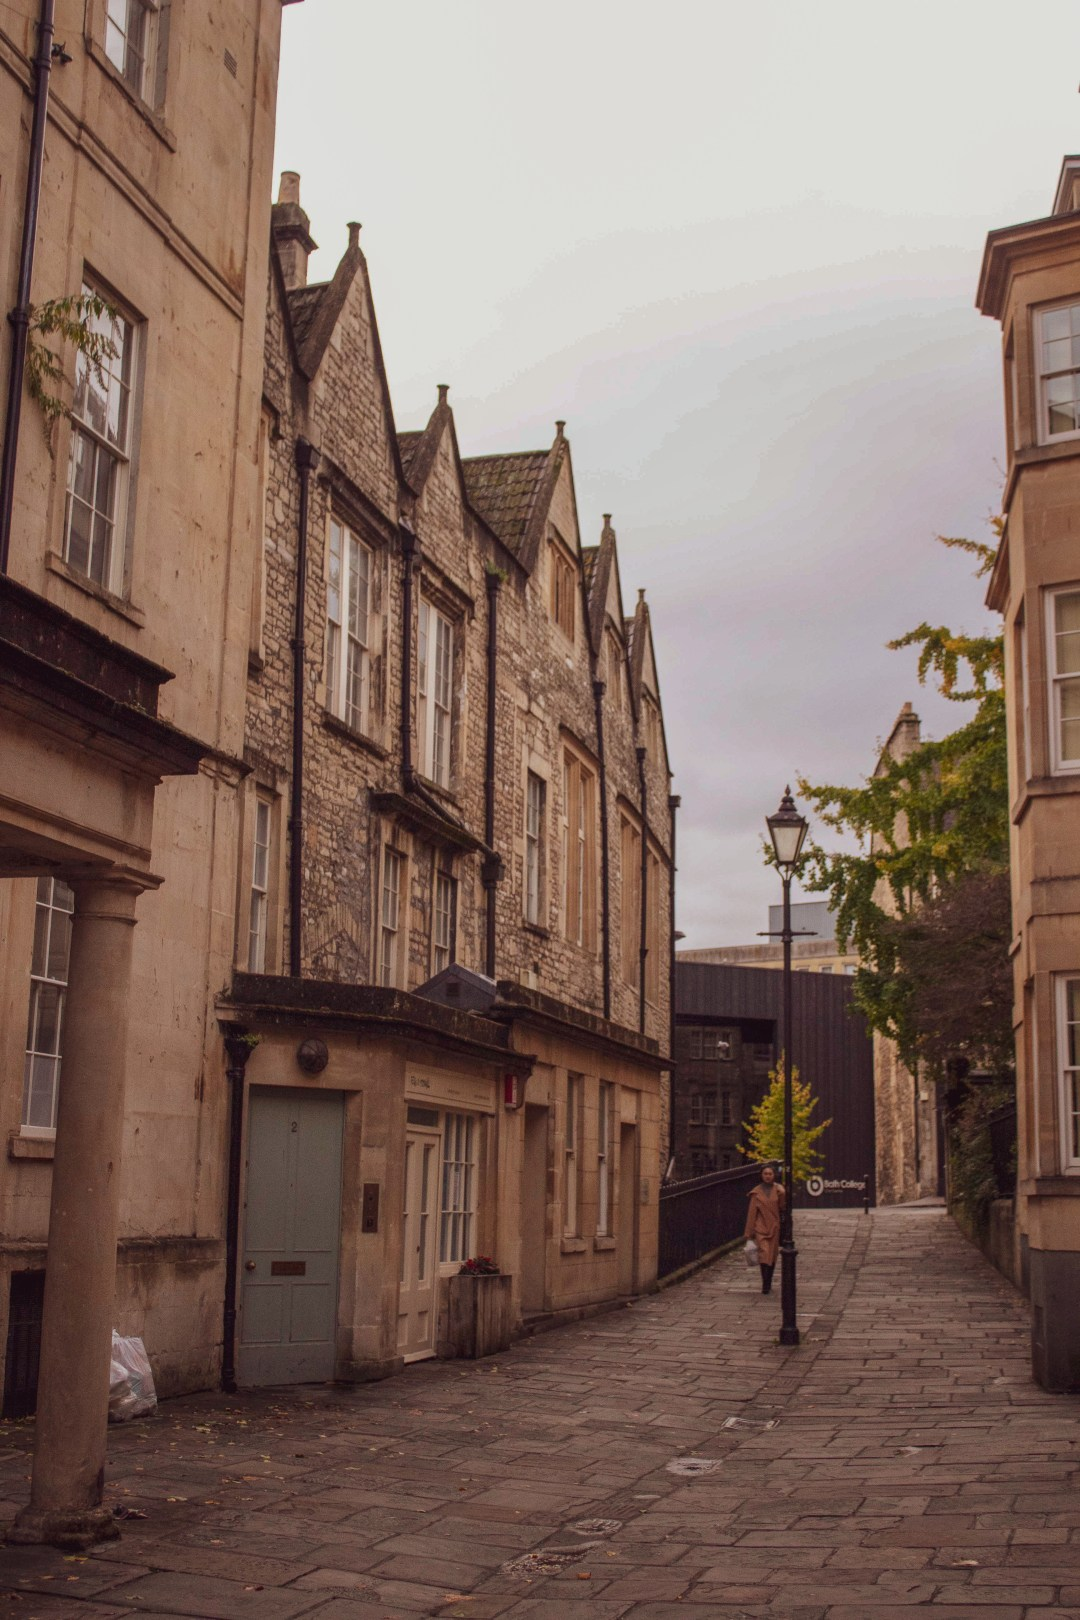 Quiet street of Bath with quaint stone houses and an old street lamp